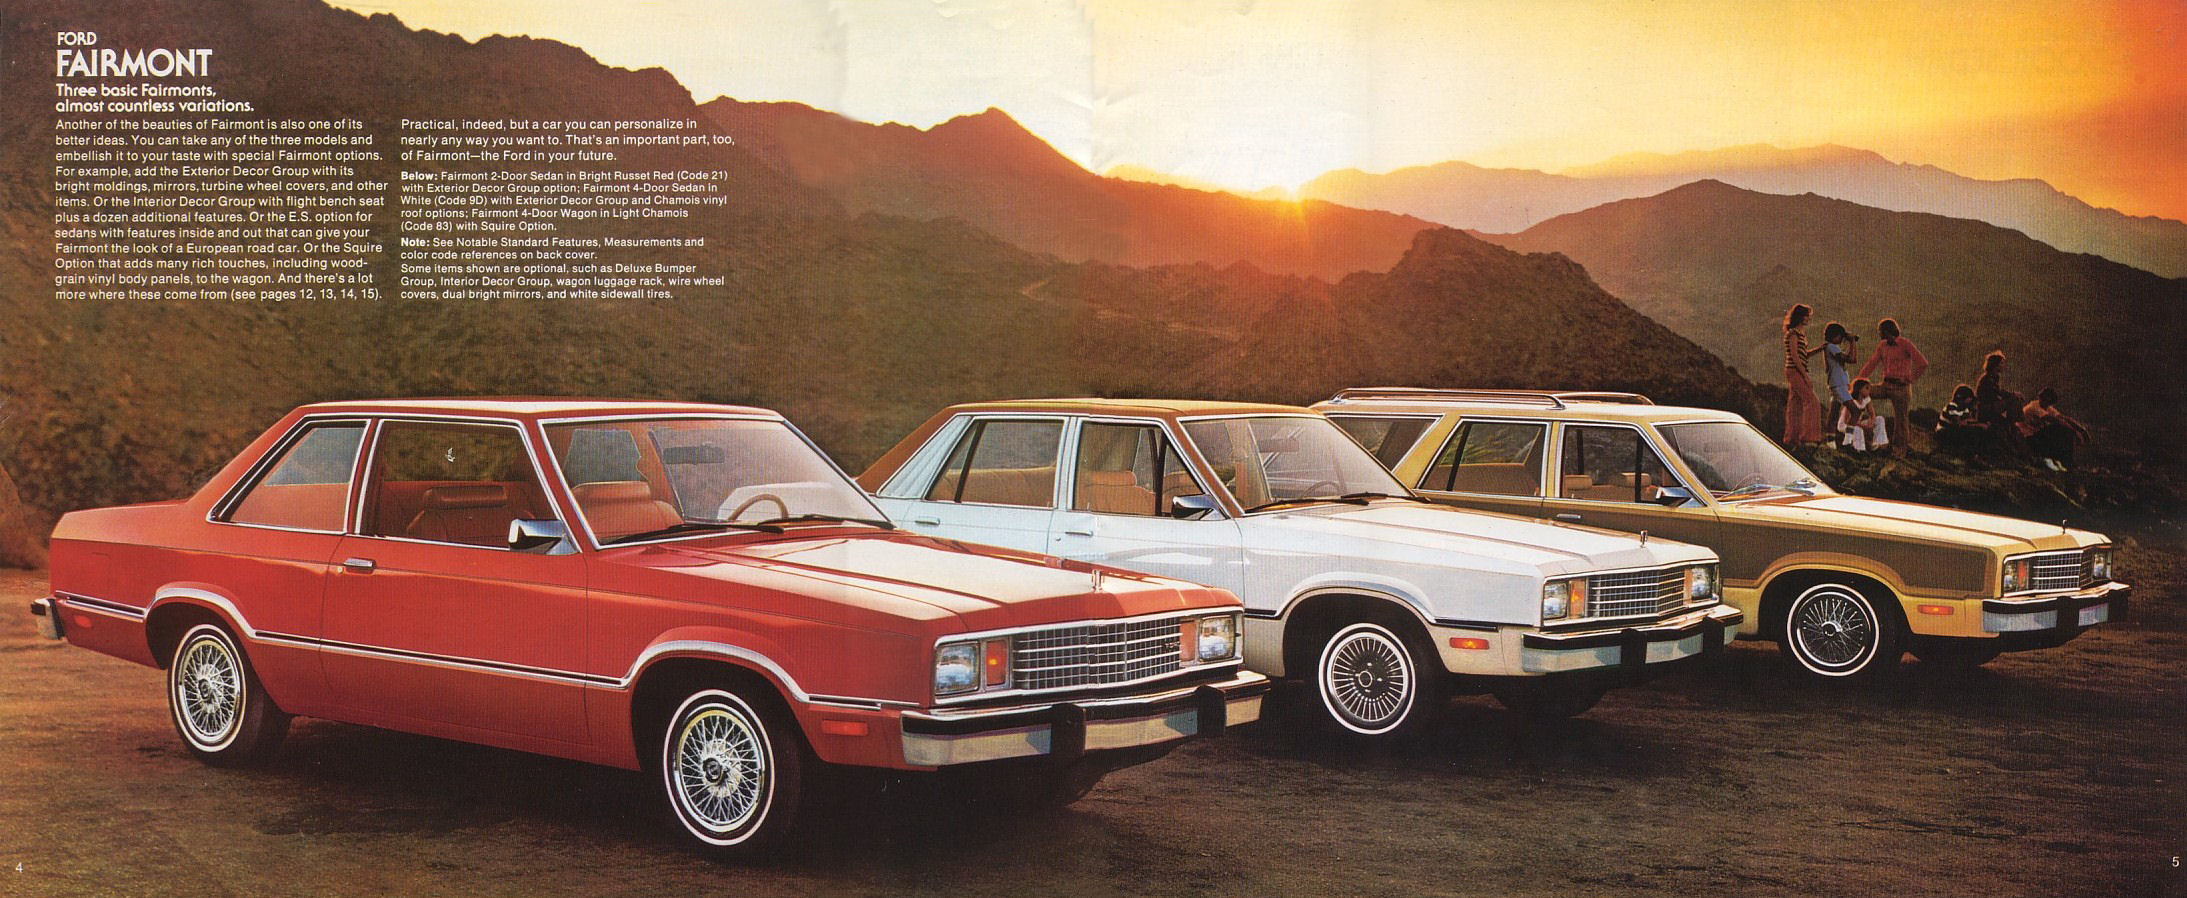 2015 Ford Thunderbird >> Ford Fairmont 1978: Review, Amazing Pictures and Images ...